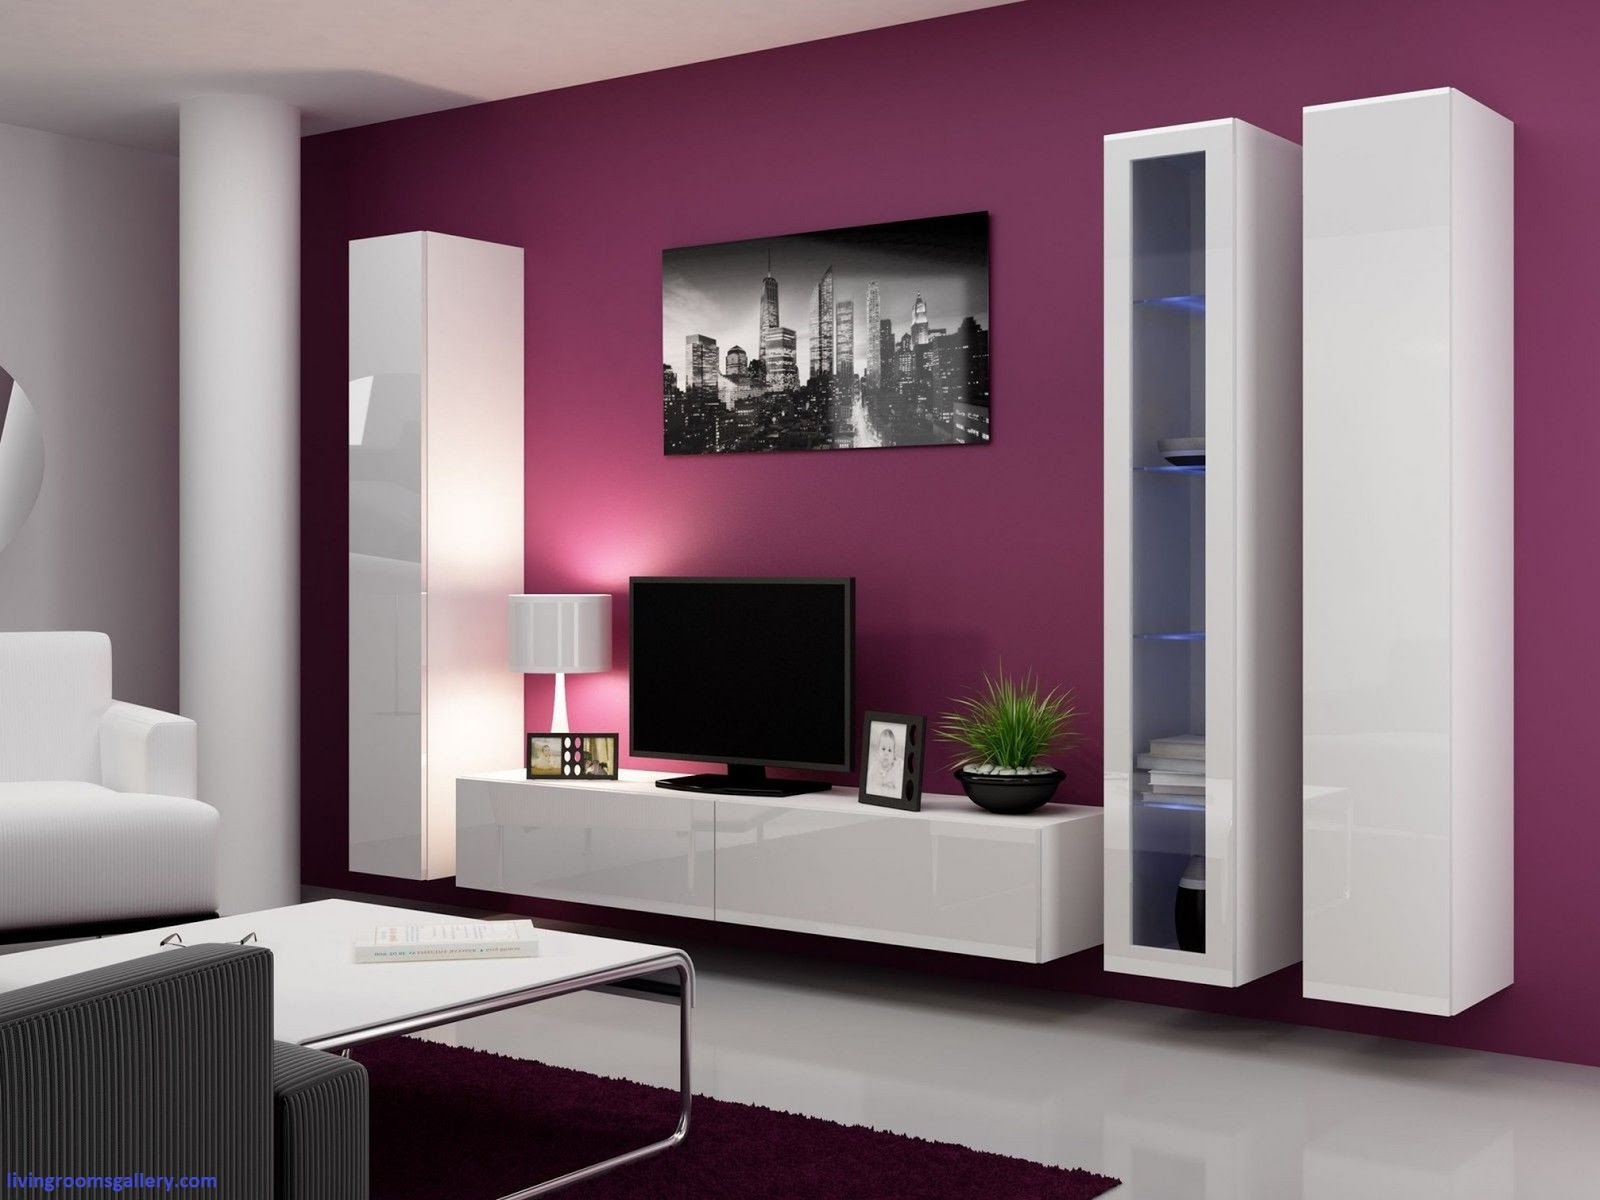 Modern luxurious cupboard designs in living room 2016 living rooms gallery - Contemporary tv wall unit designs ...